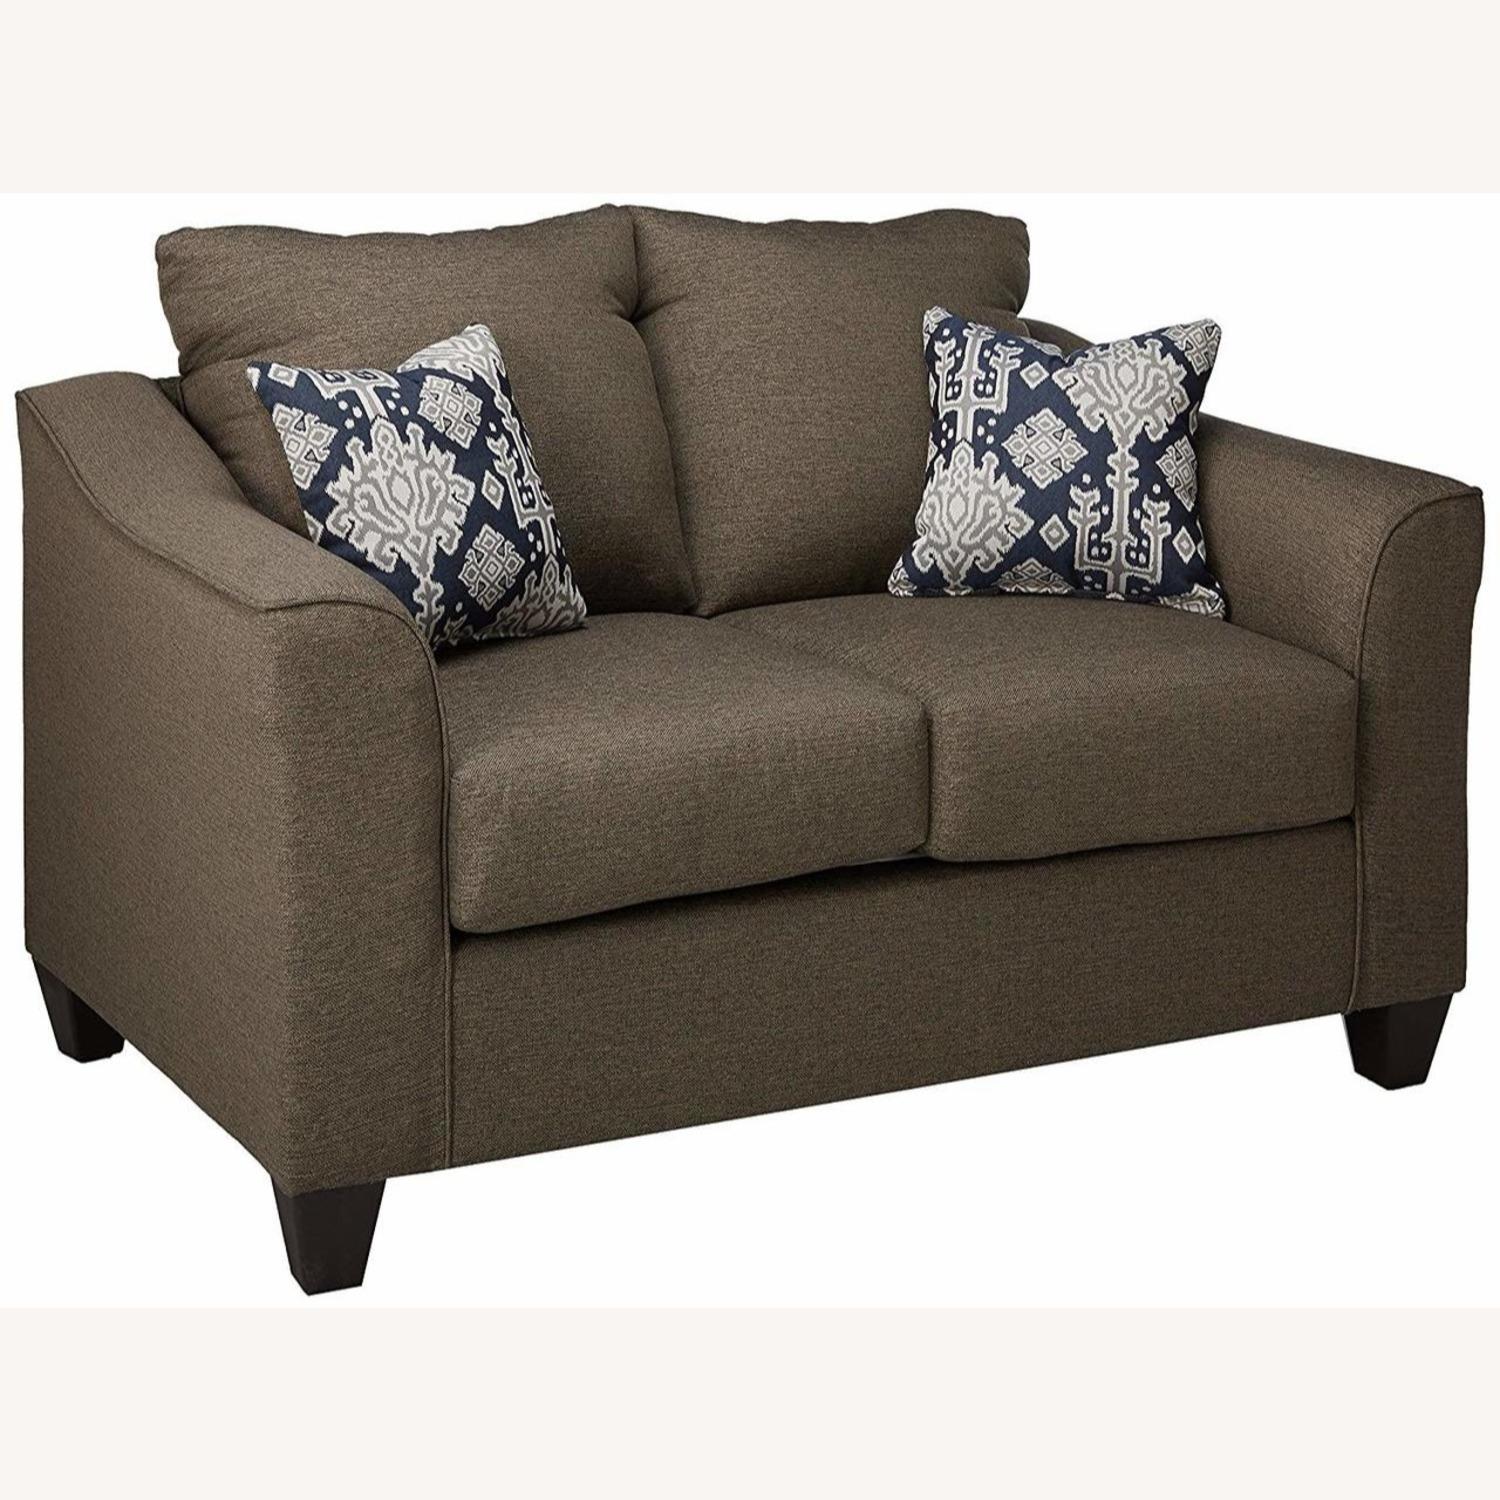 Flared Arms Loveseat In Neutral Grey - image-1